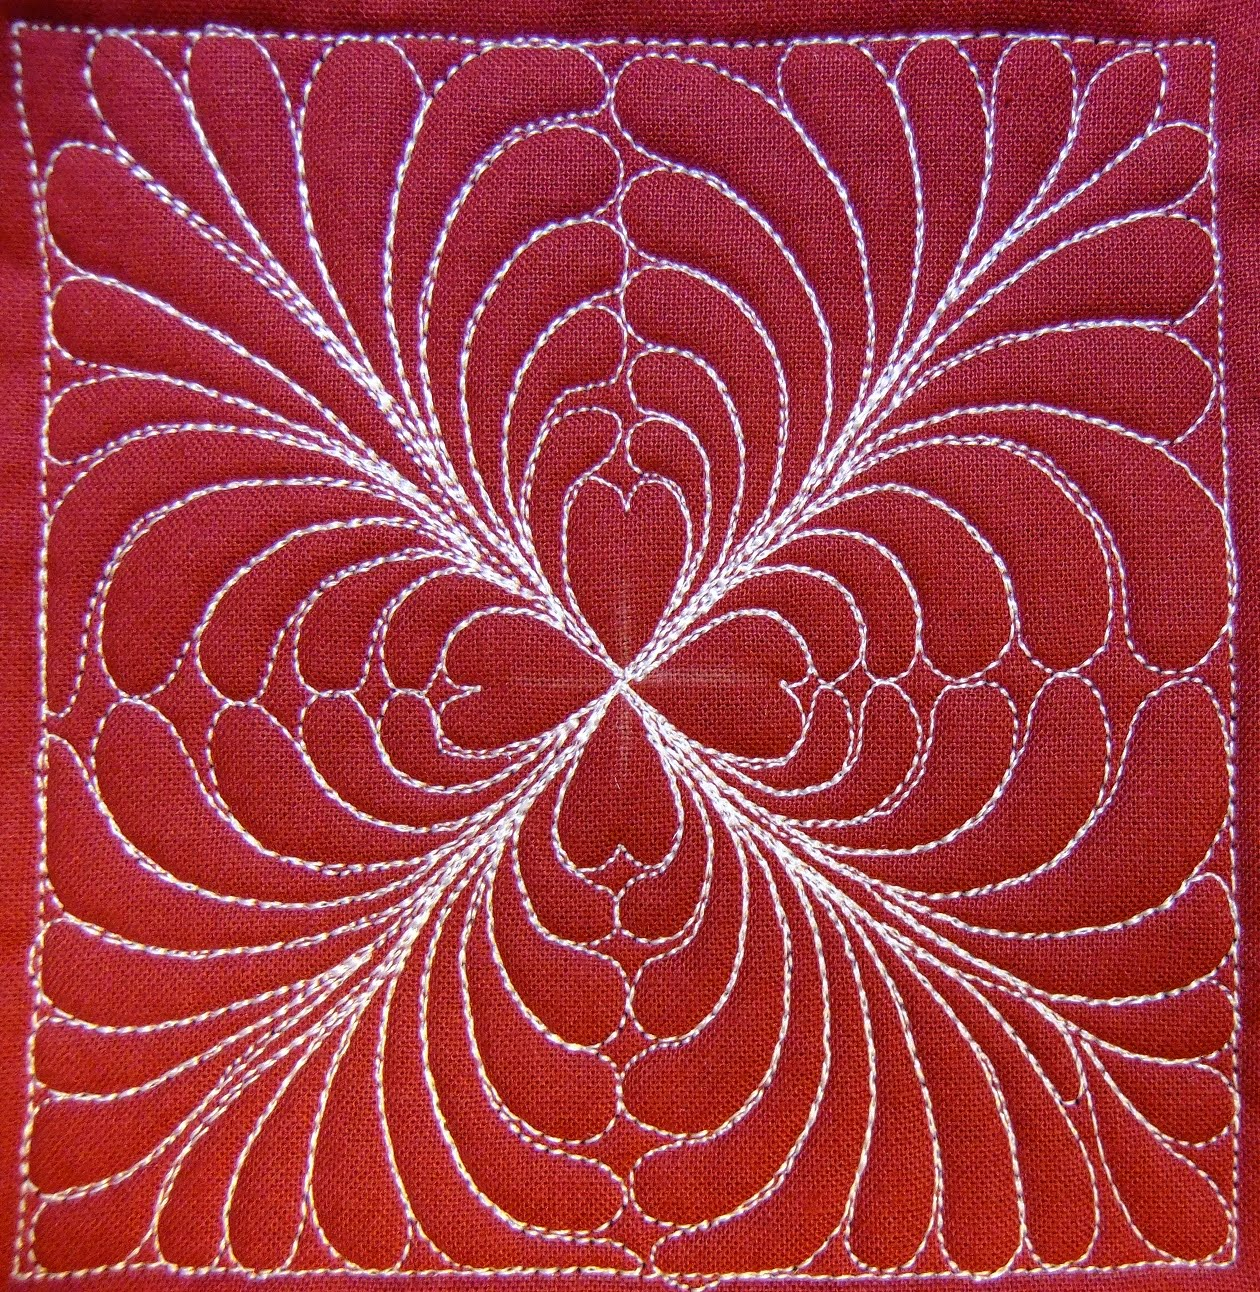 Free Motion Quilting Designs Hearts : The Free Motion Quilting Project: Day 231 - Feathered Hearts